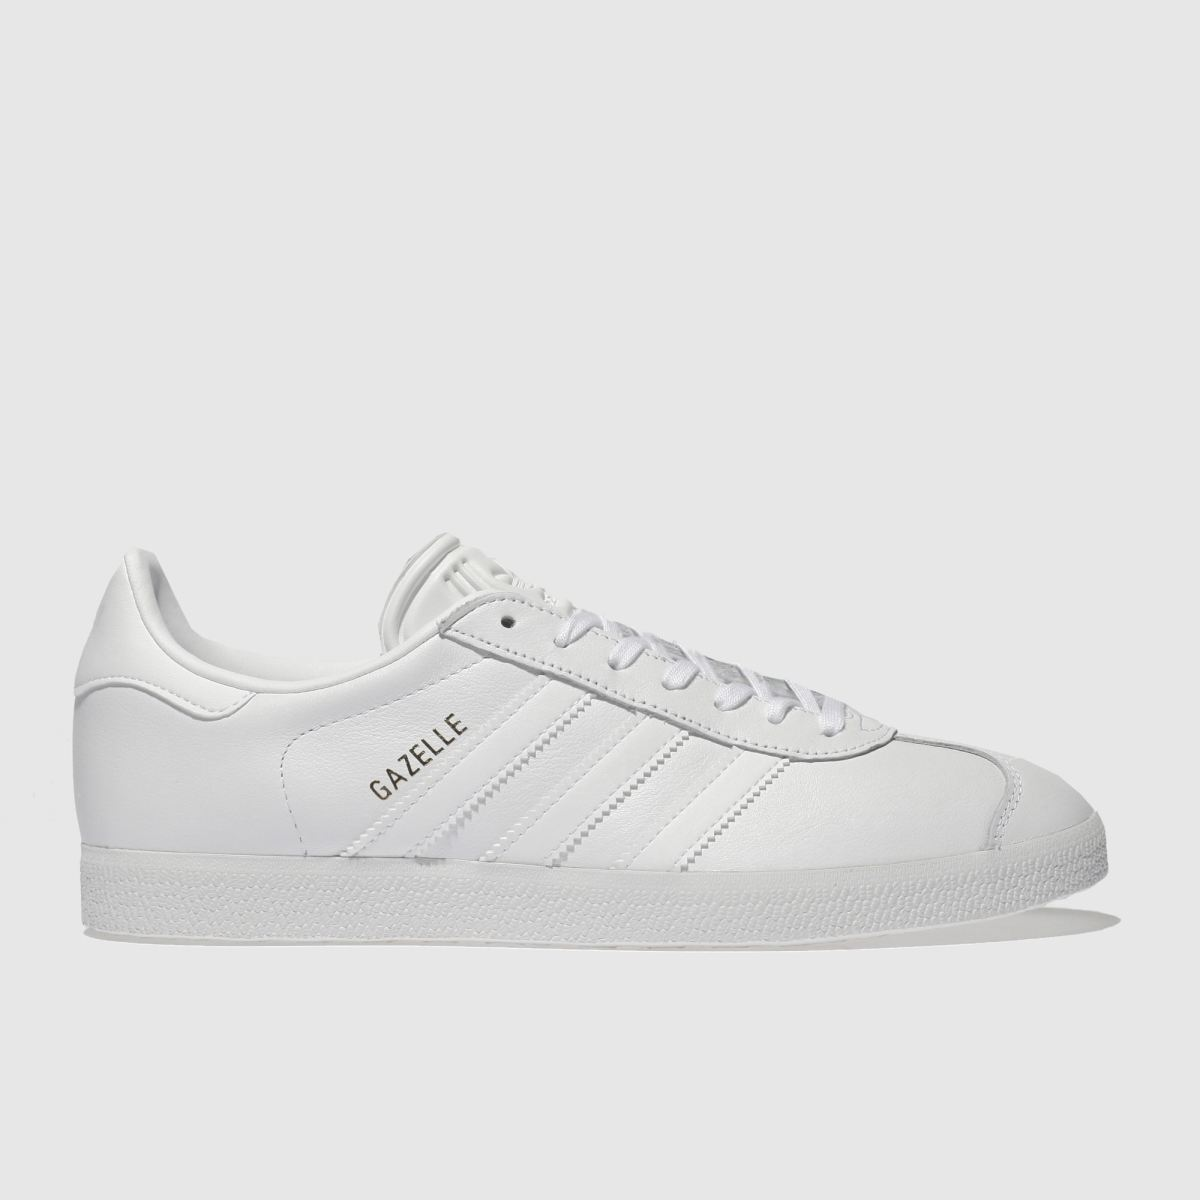 adidas gazelle pale blue